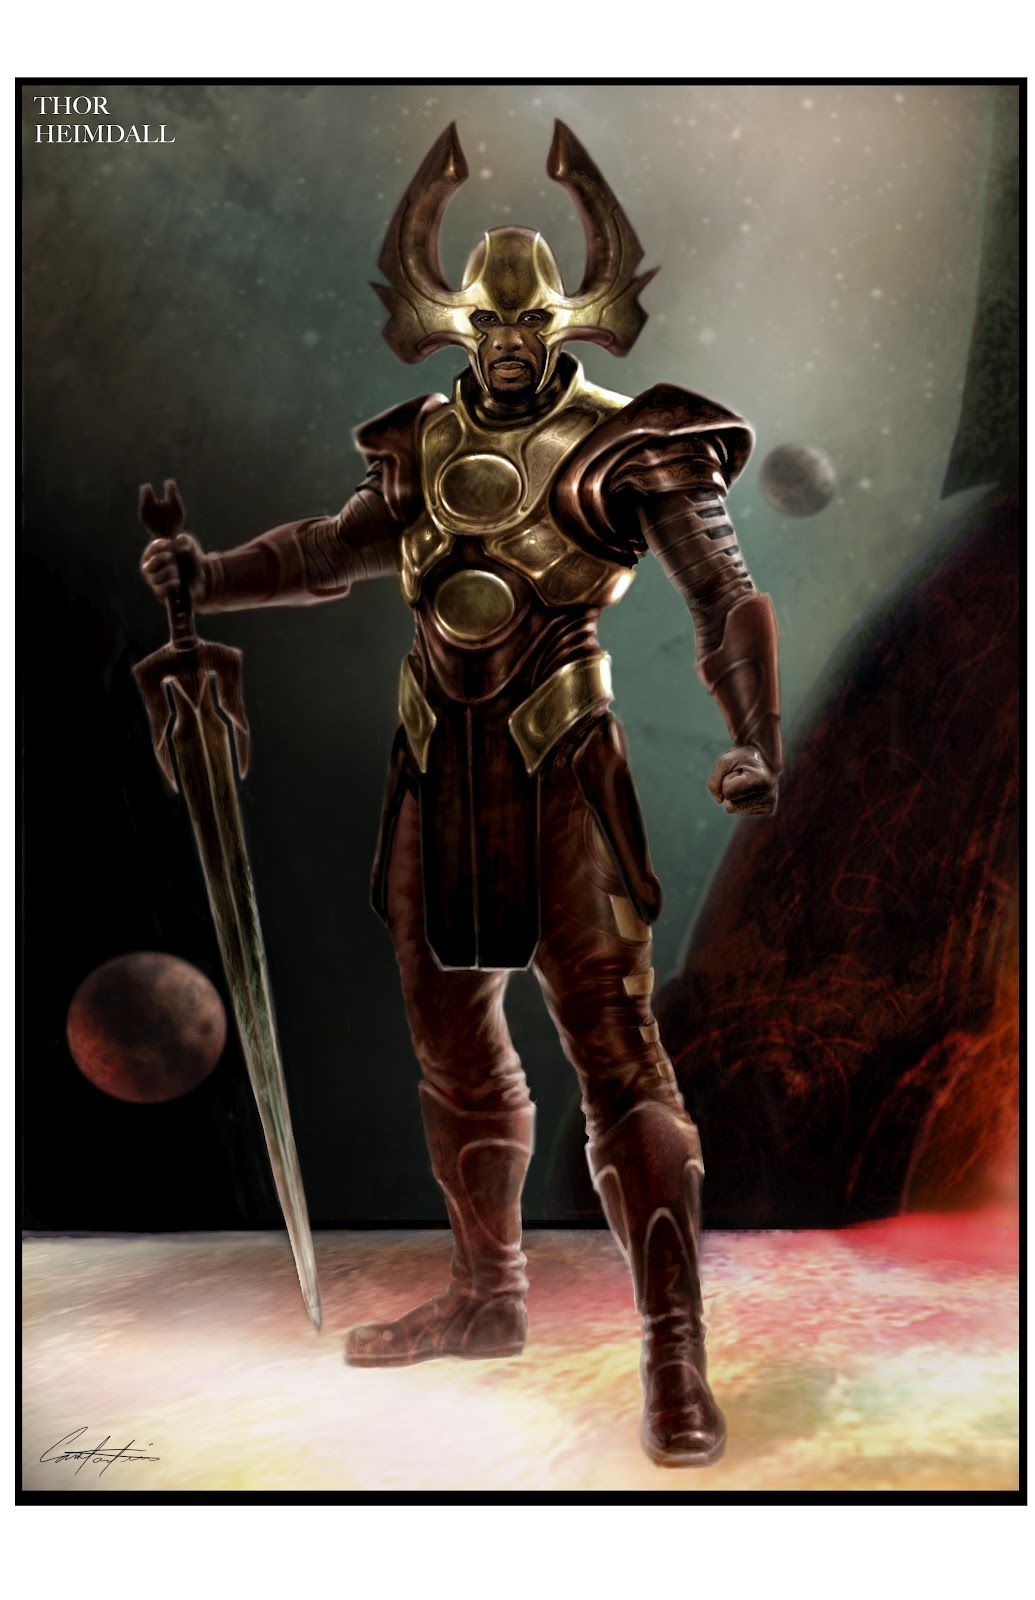 Mighty Heimdall | Afro Artworks | Pinterest | Sci fi ...